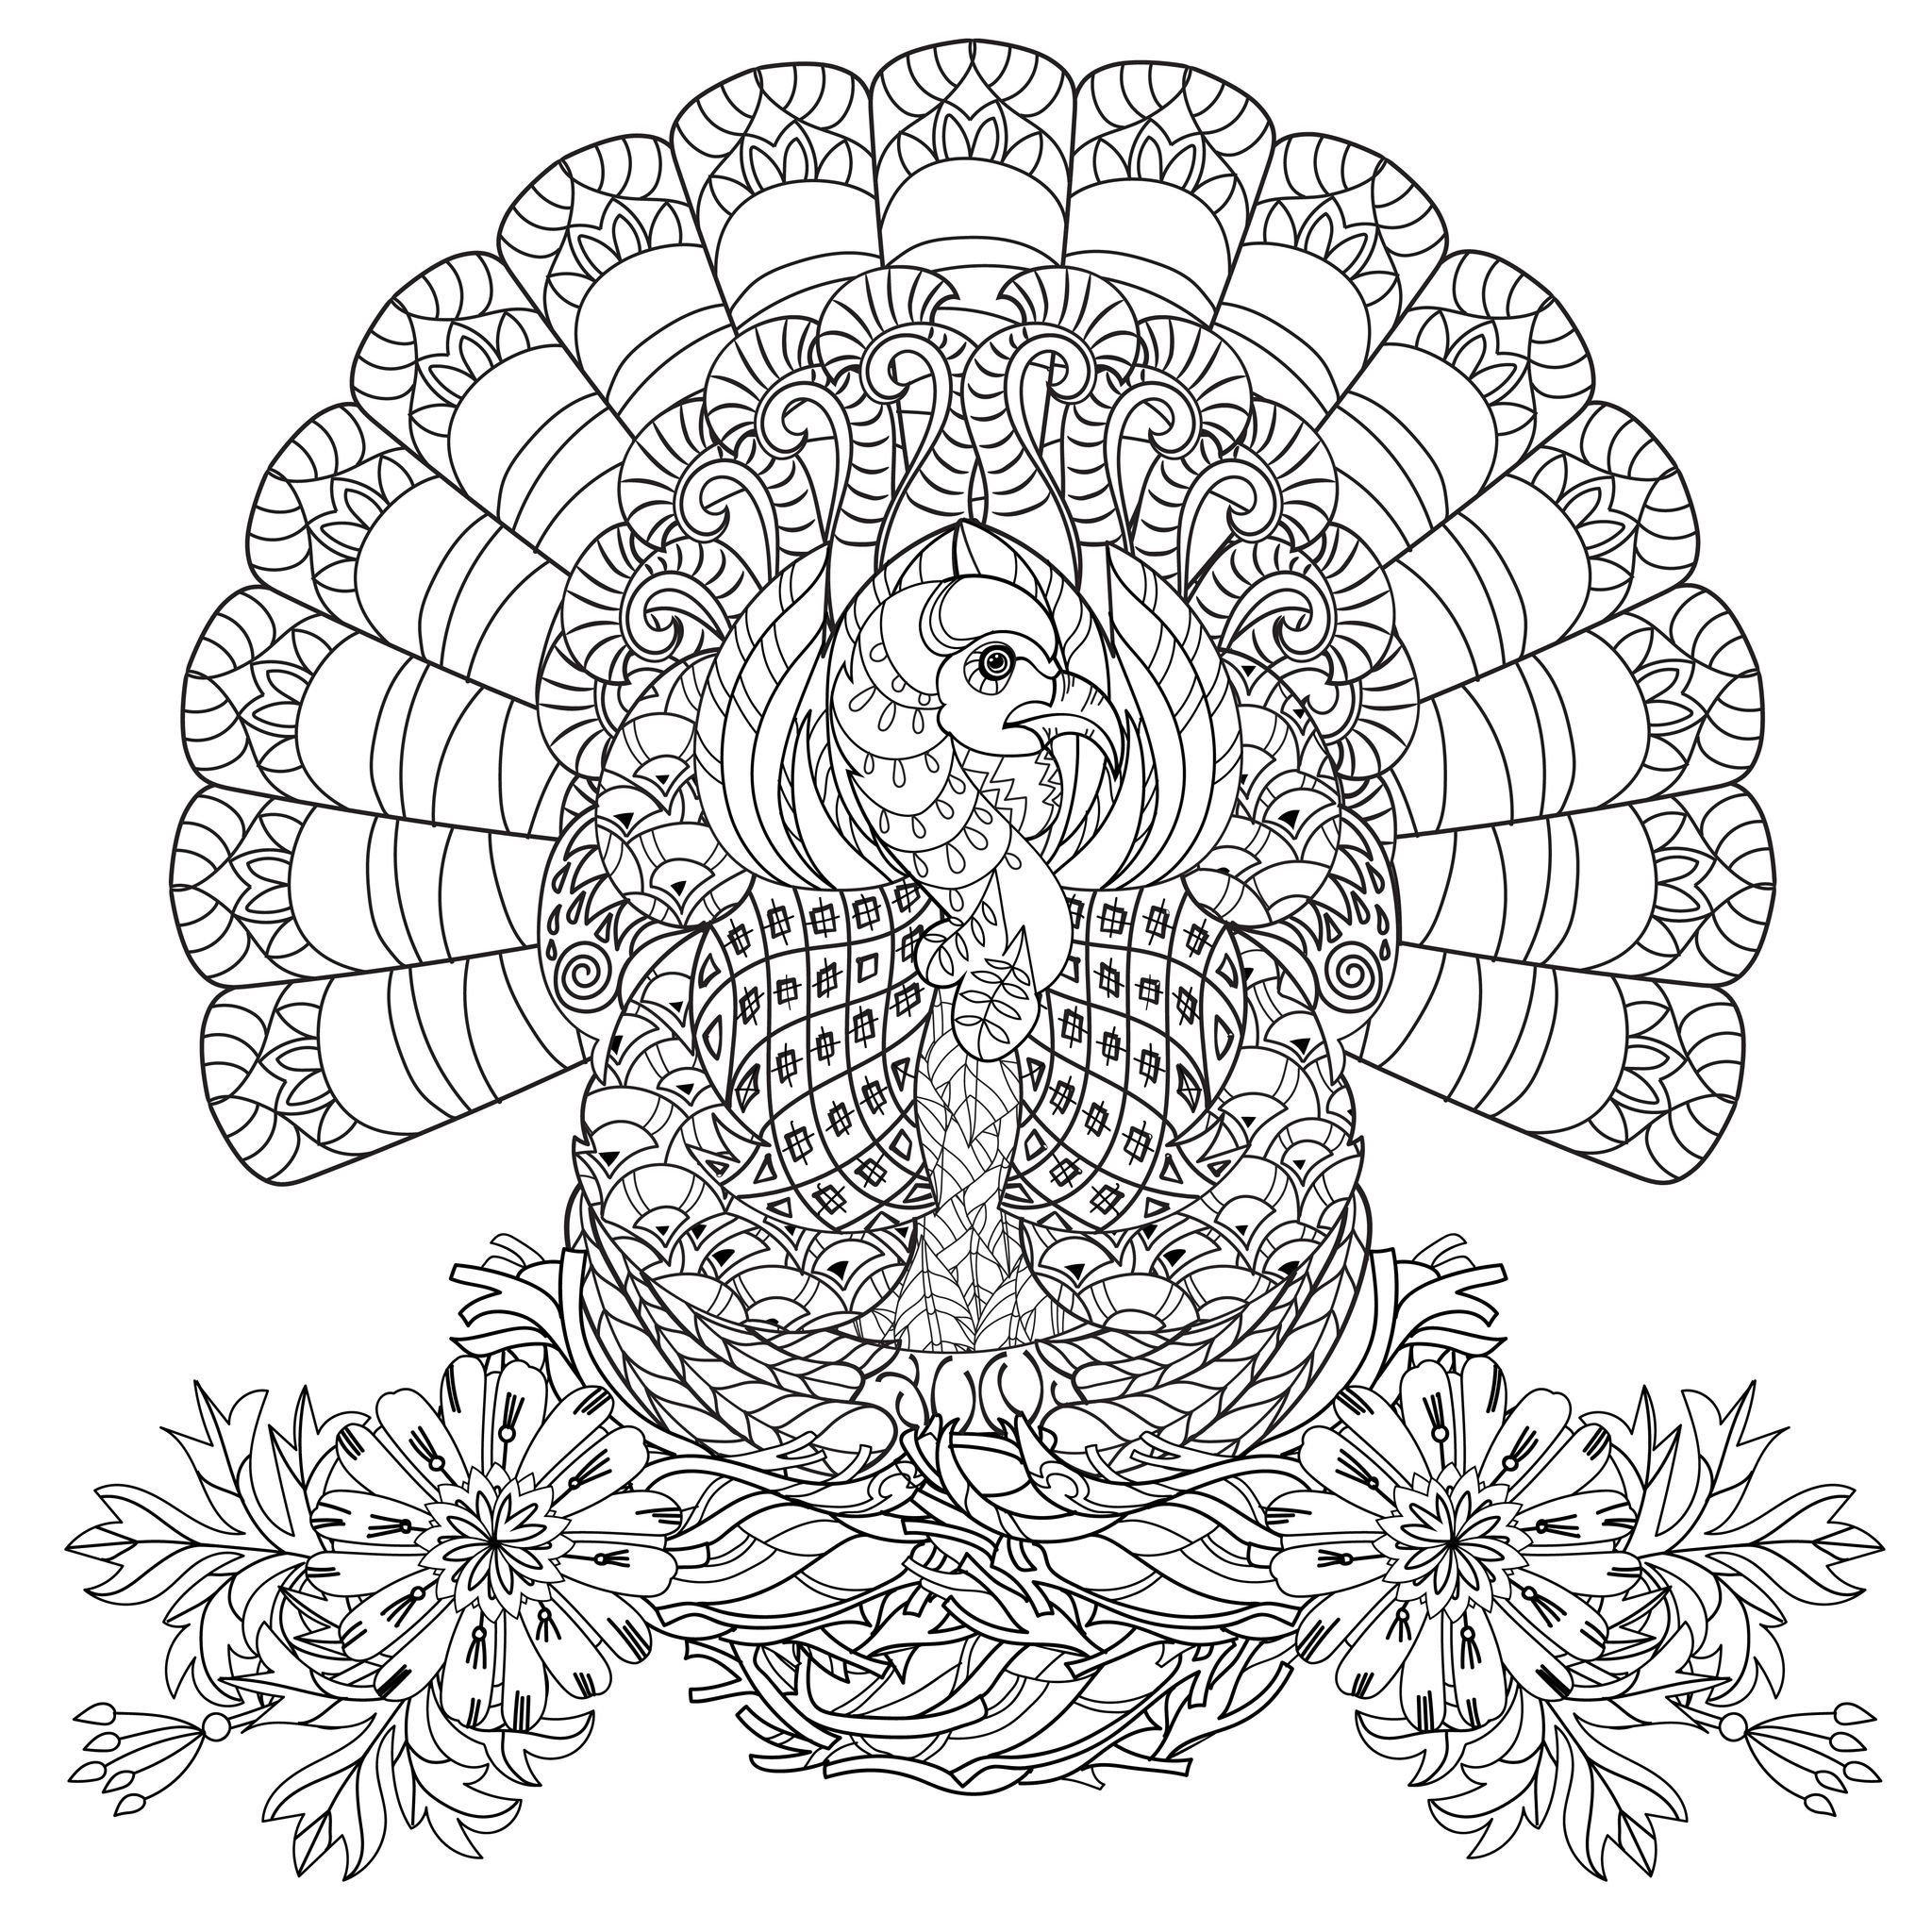 Thanksgiving Coloring Pages For Adults - Coloring Home